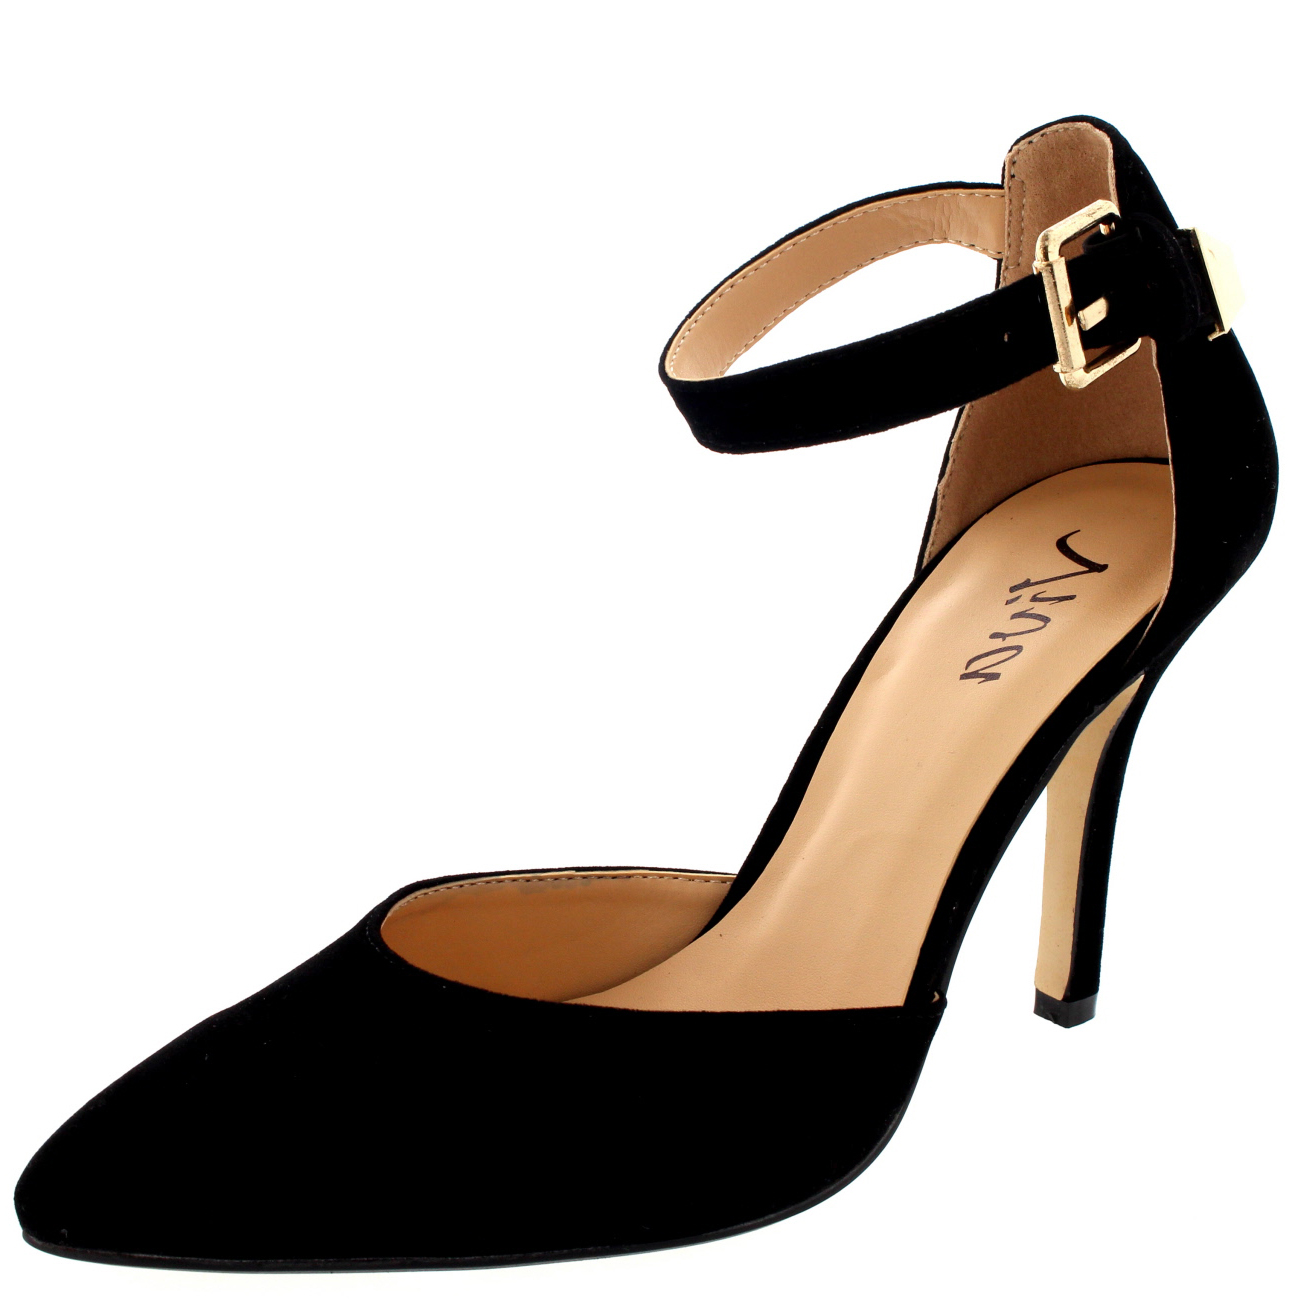 Ankle Strap Low Heels Nbz0263p